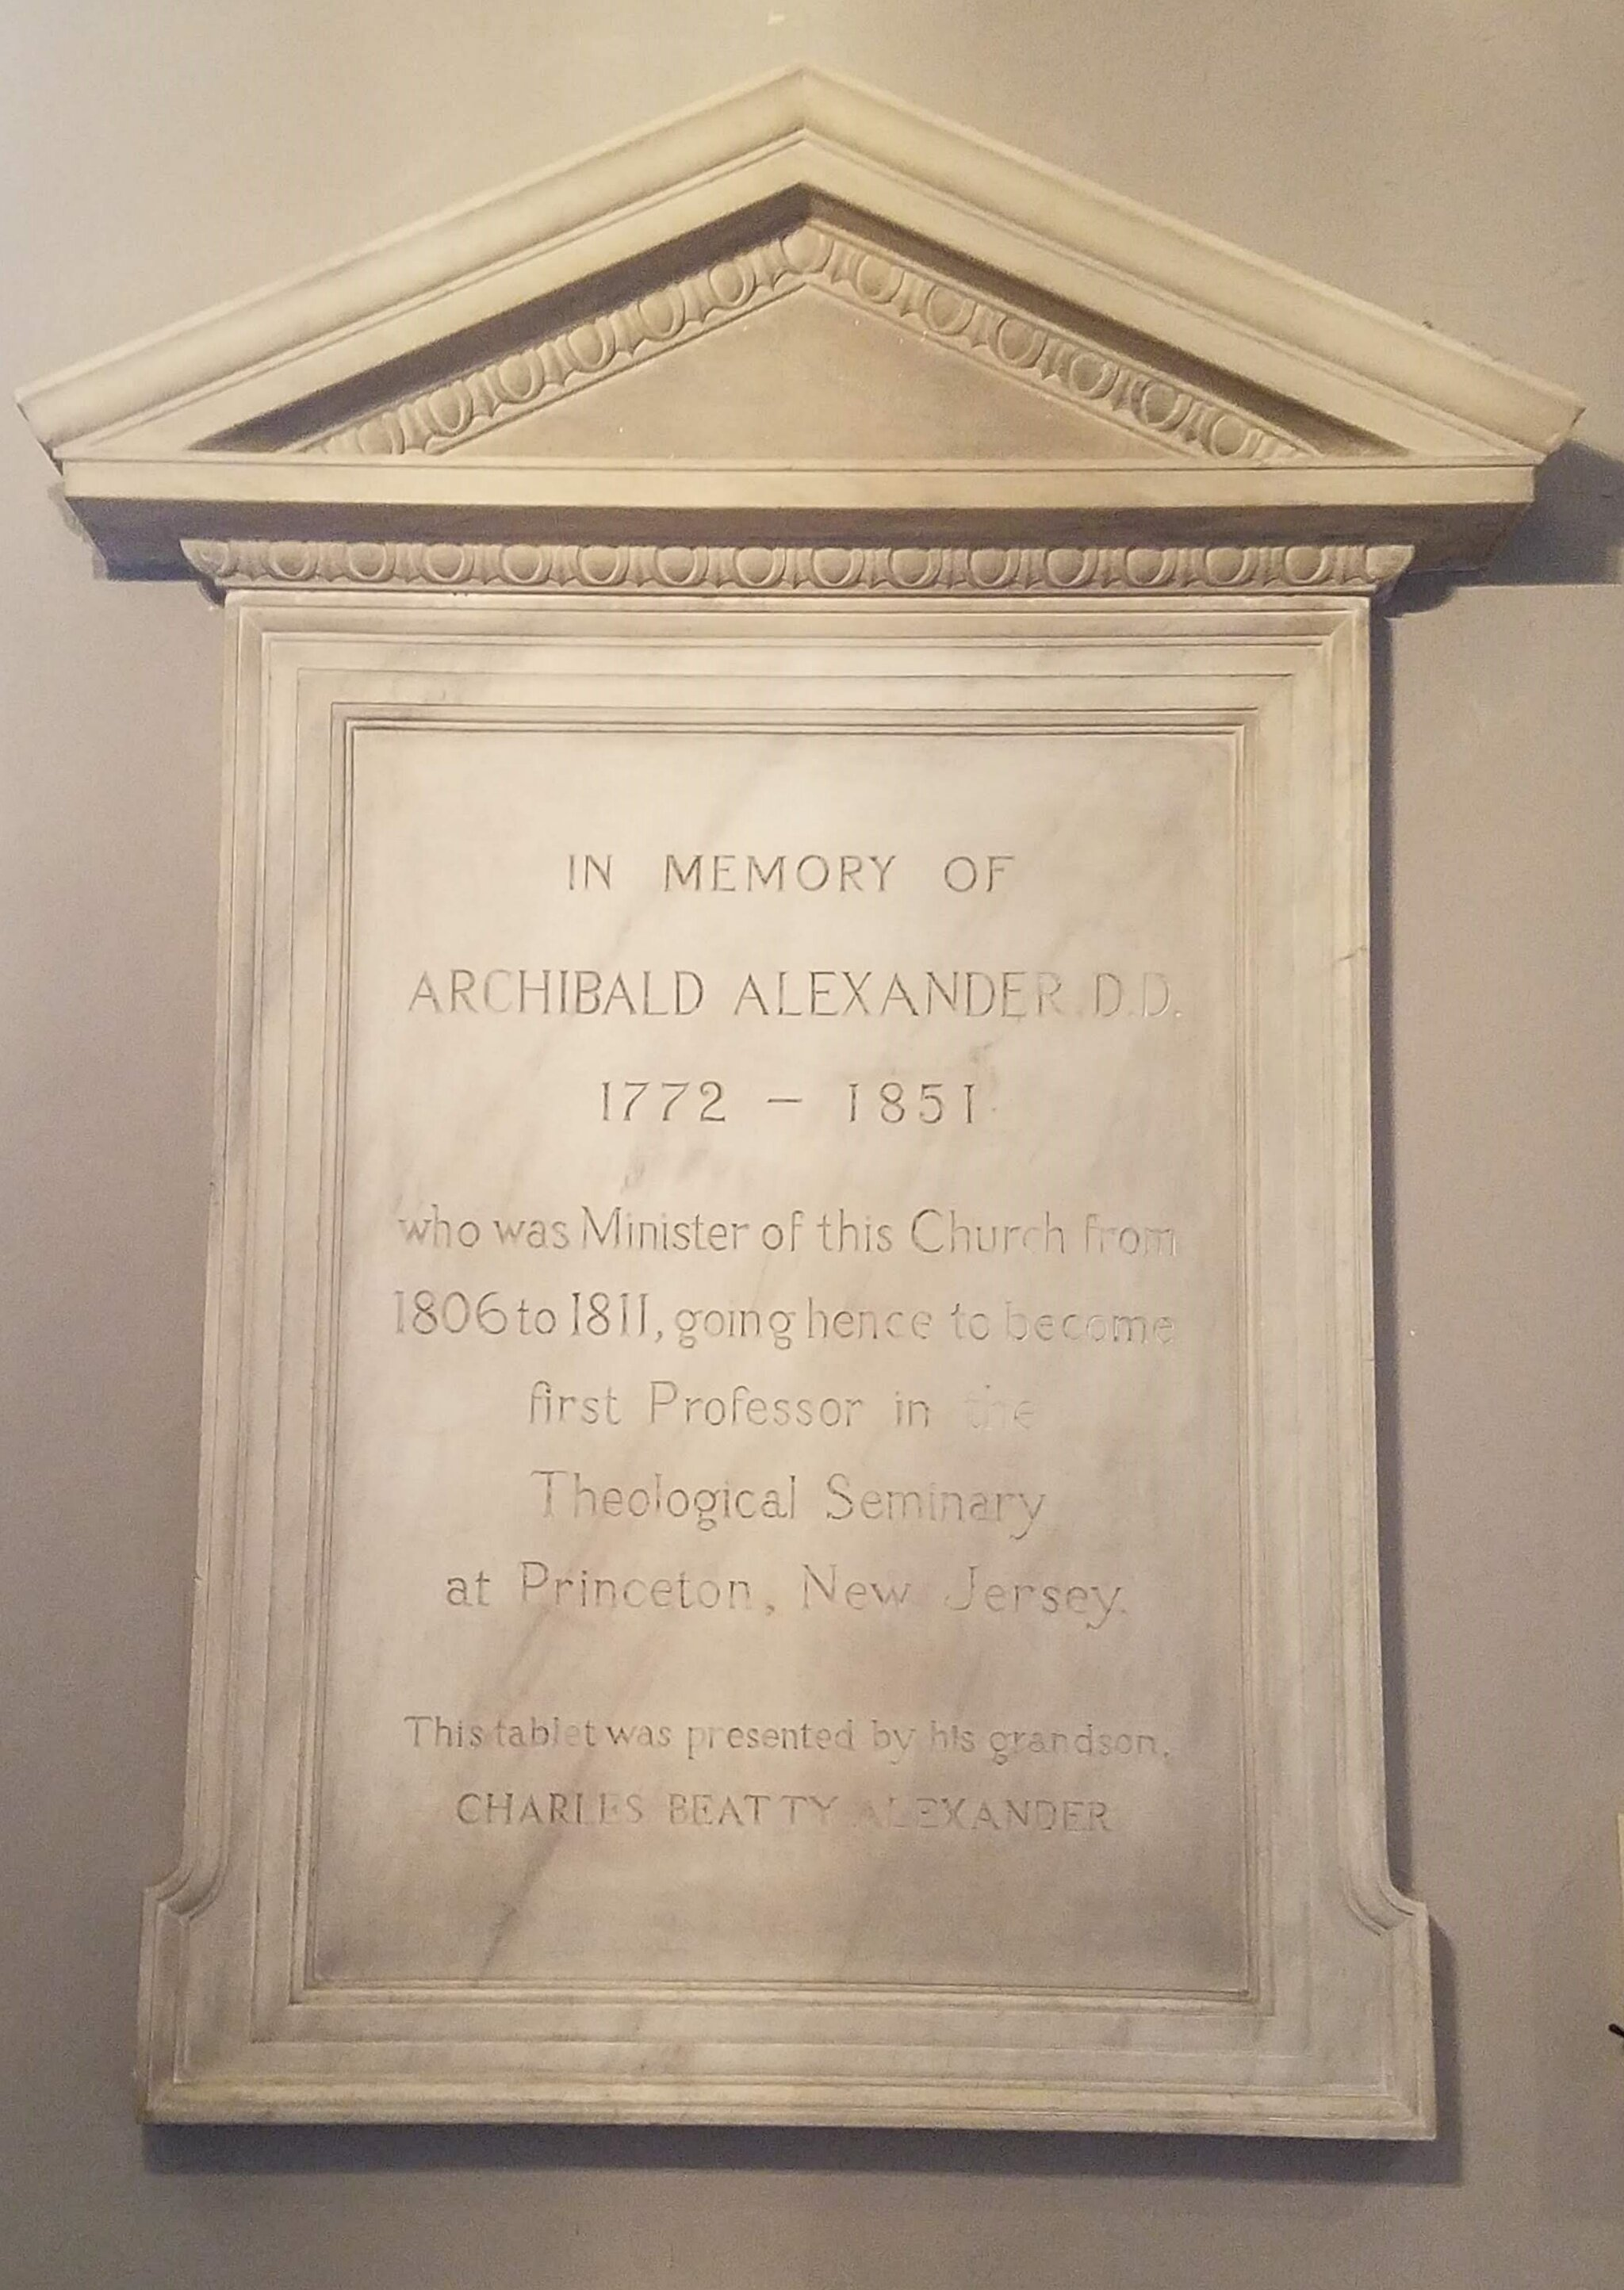 Interior commemorative plaque honoring Archibald Alexander (photo credit: R. Andrew Myers).